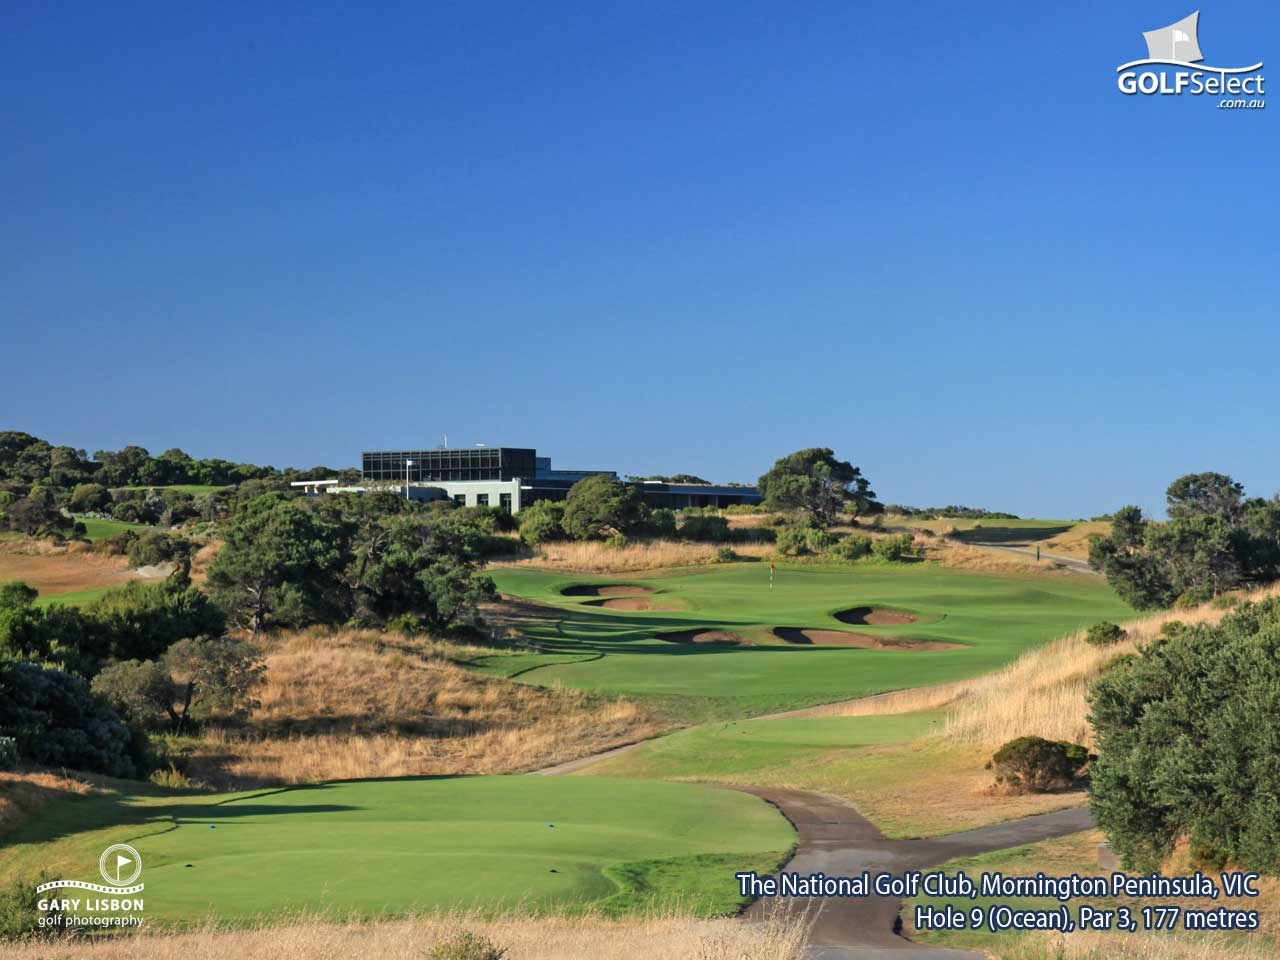 The National Golf Club (Gunnamatta Course) Hole 9, Par 3, 177 metres